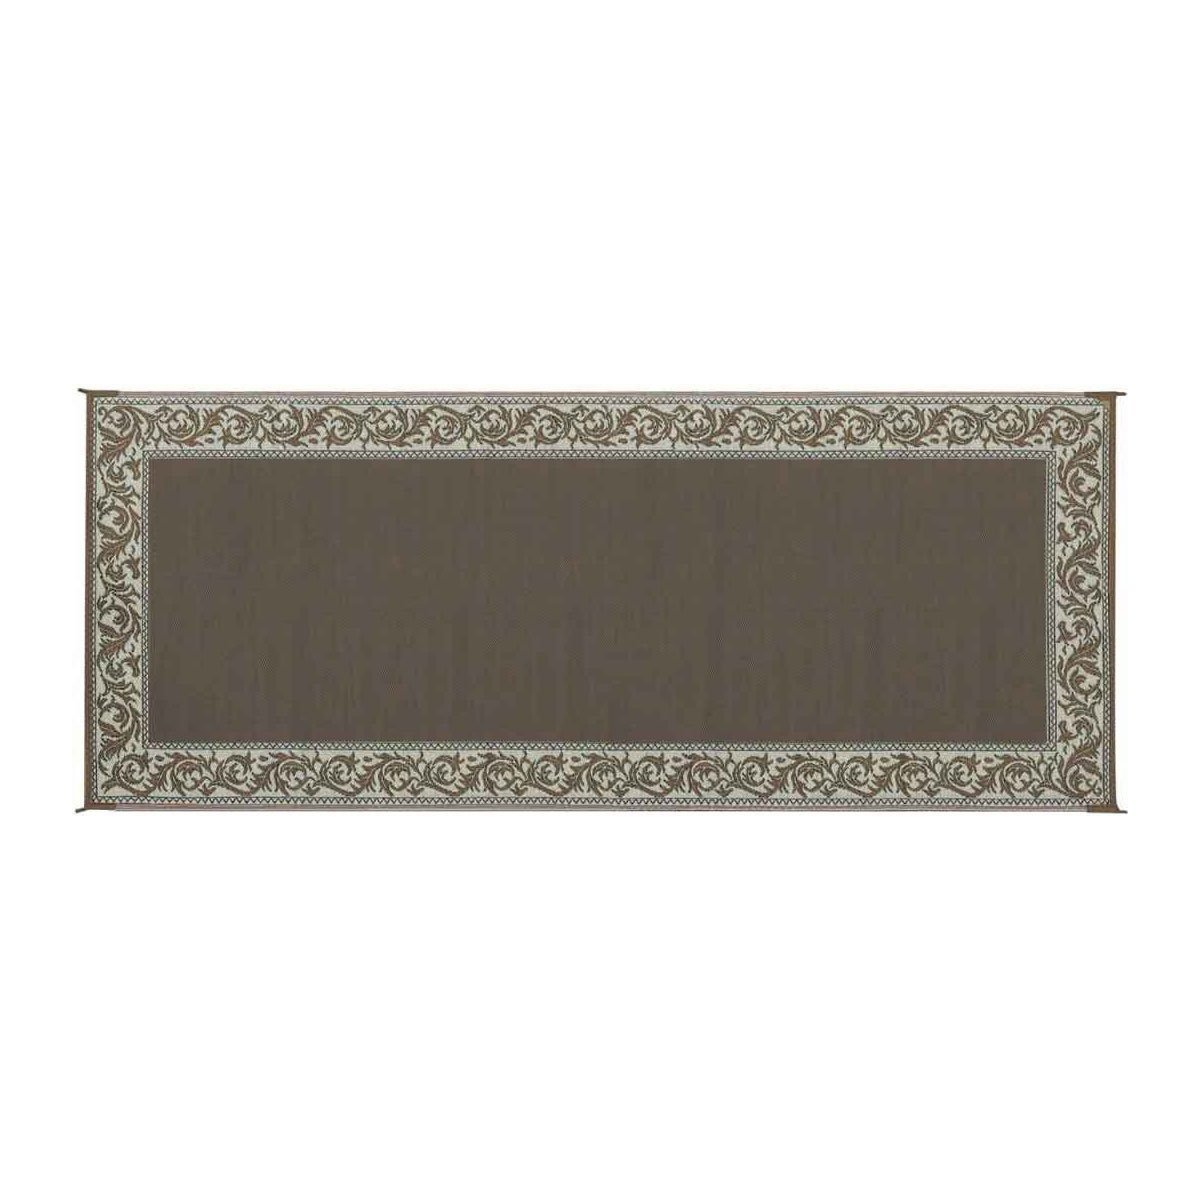 Ming's Mark RD7 Brown/Beige 6' x 9' Classical Reversible Mat Ming' s Mark